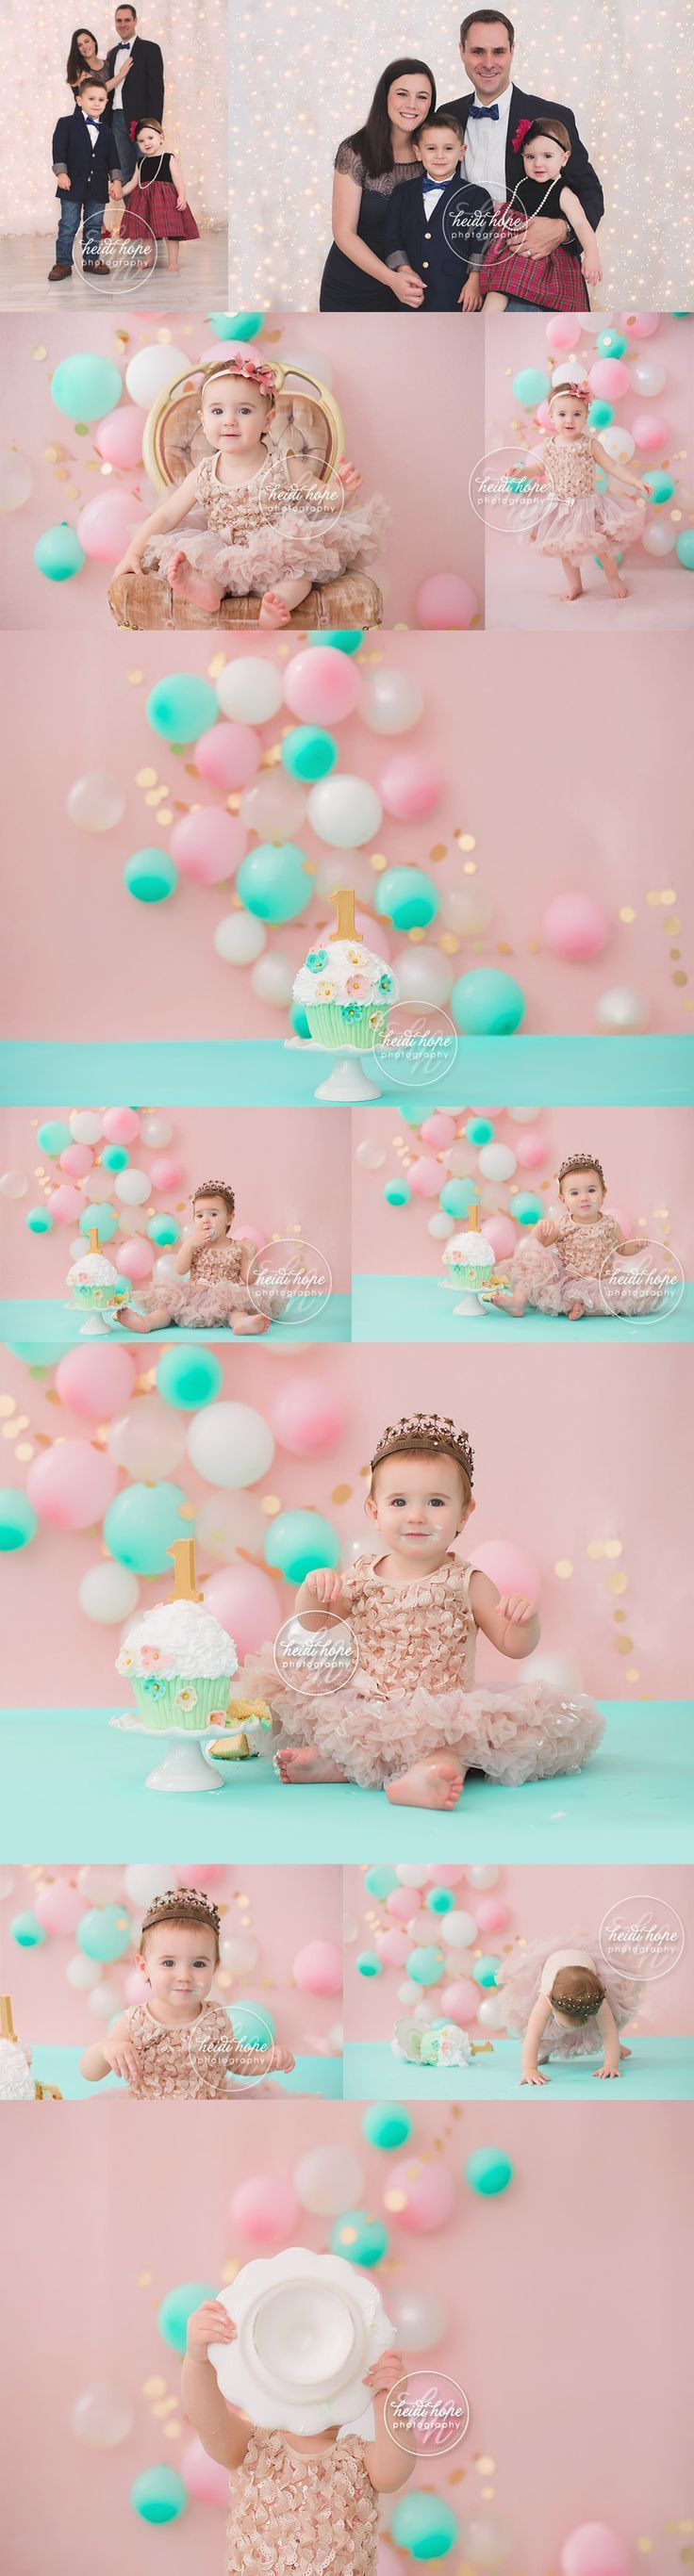 Celebrating R's first birthday with a pink, gold and mint green cakesmash fit for a princess! | Heidi Hope Photography